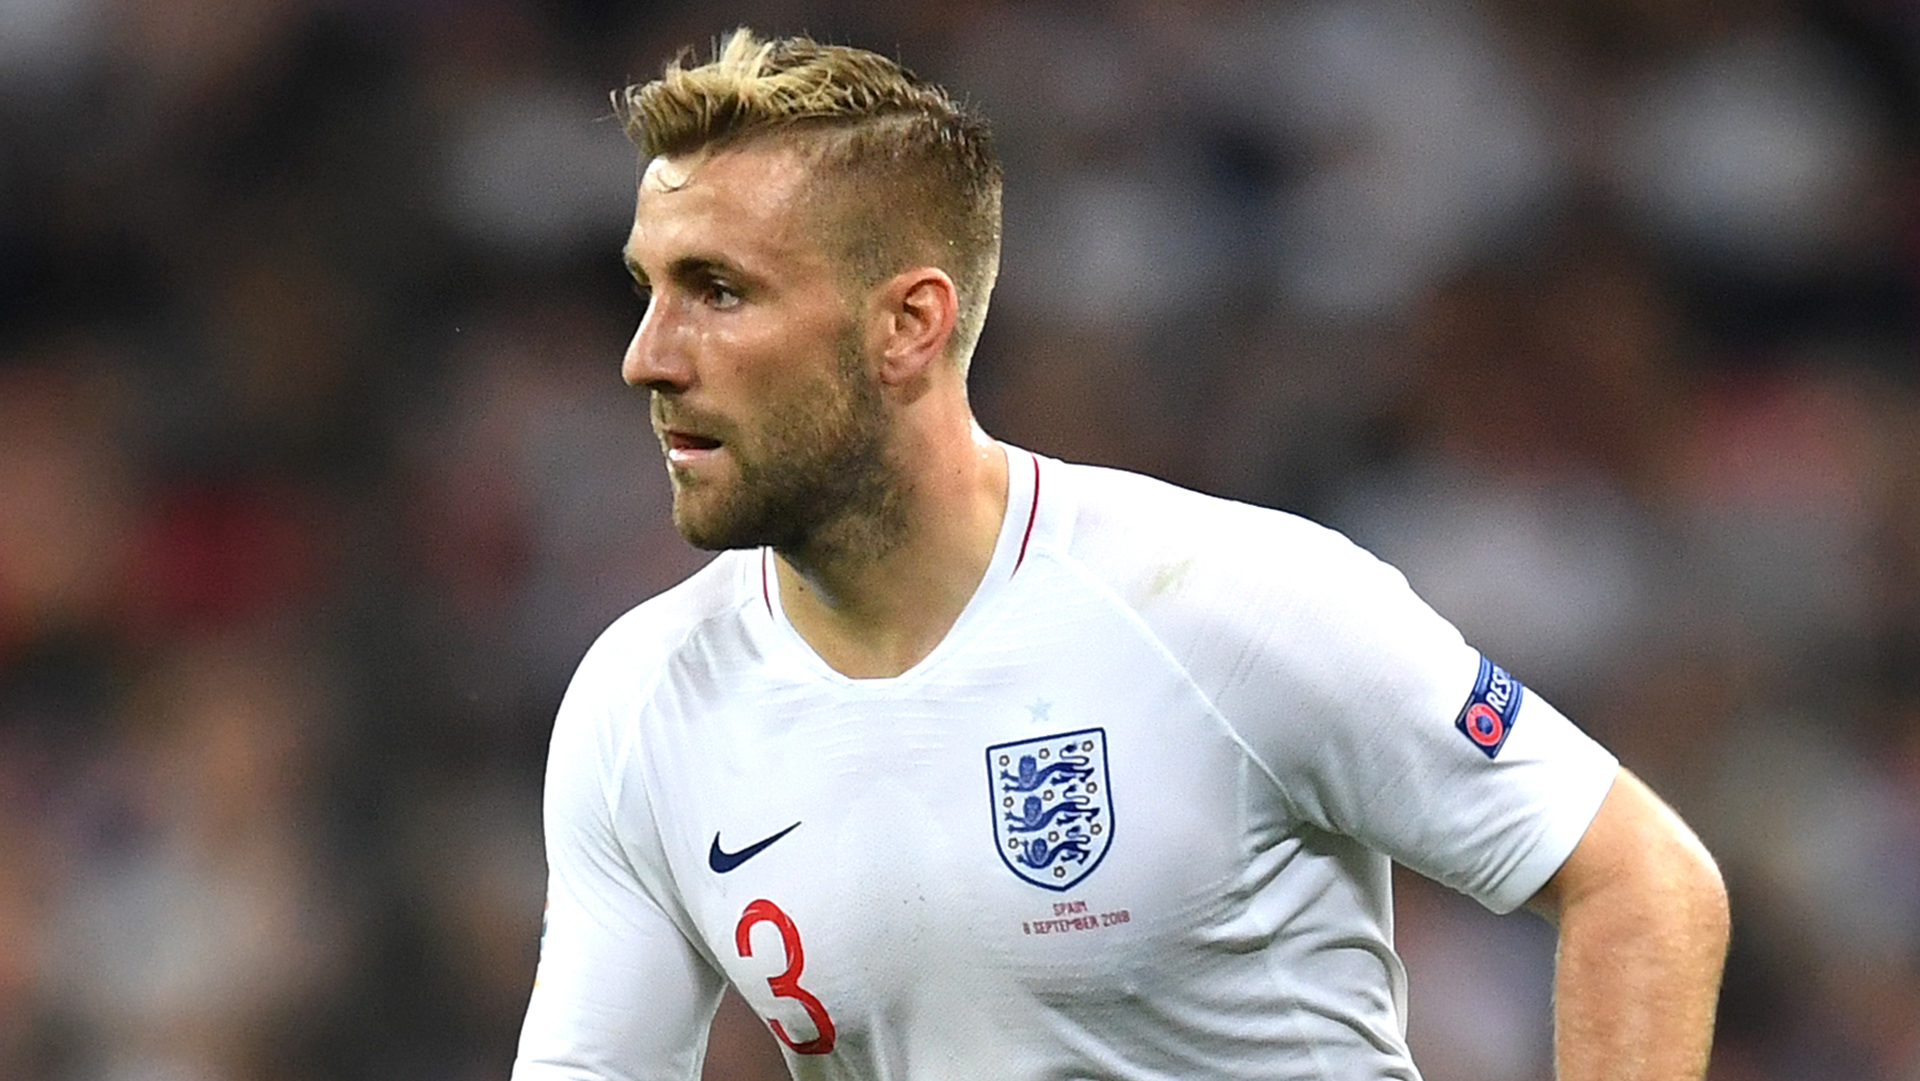 England's Nations League squad announced and Harry Kane is on the plane